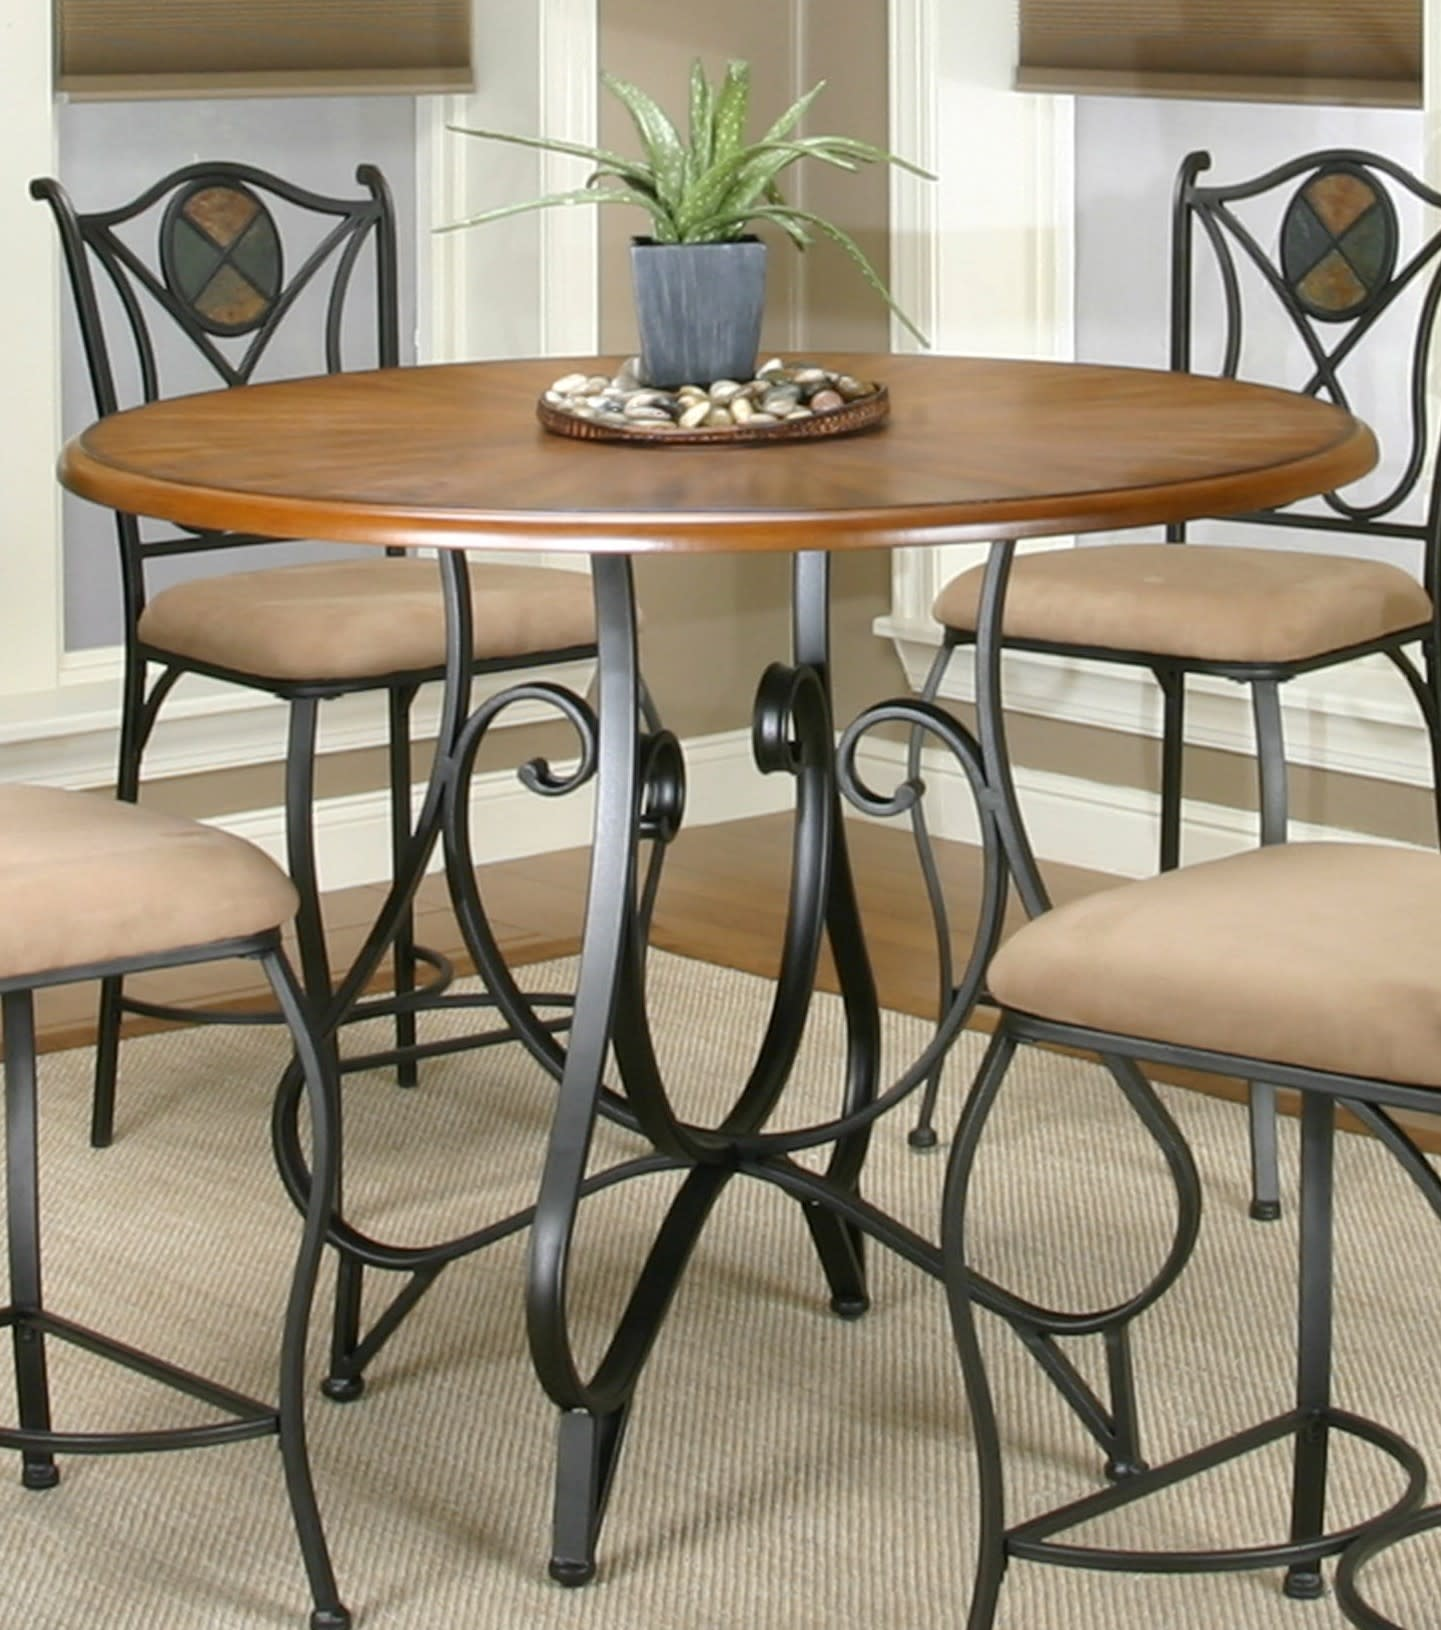 Vail Espresso Counter Height Dining Table with Distressed Rustic Medium Oak Top